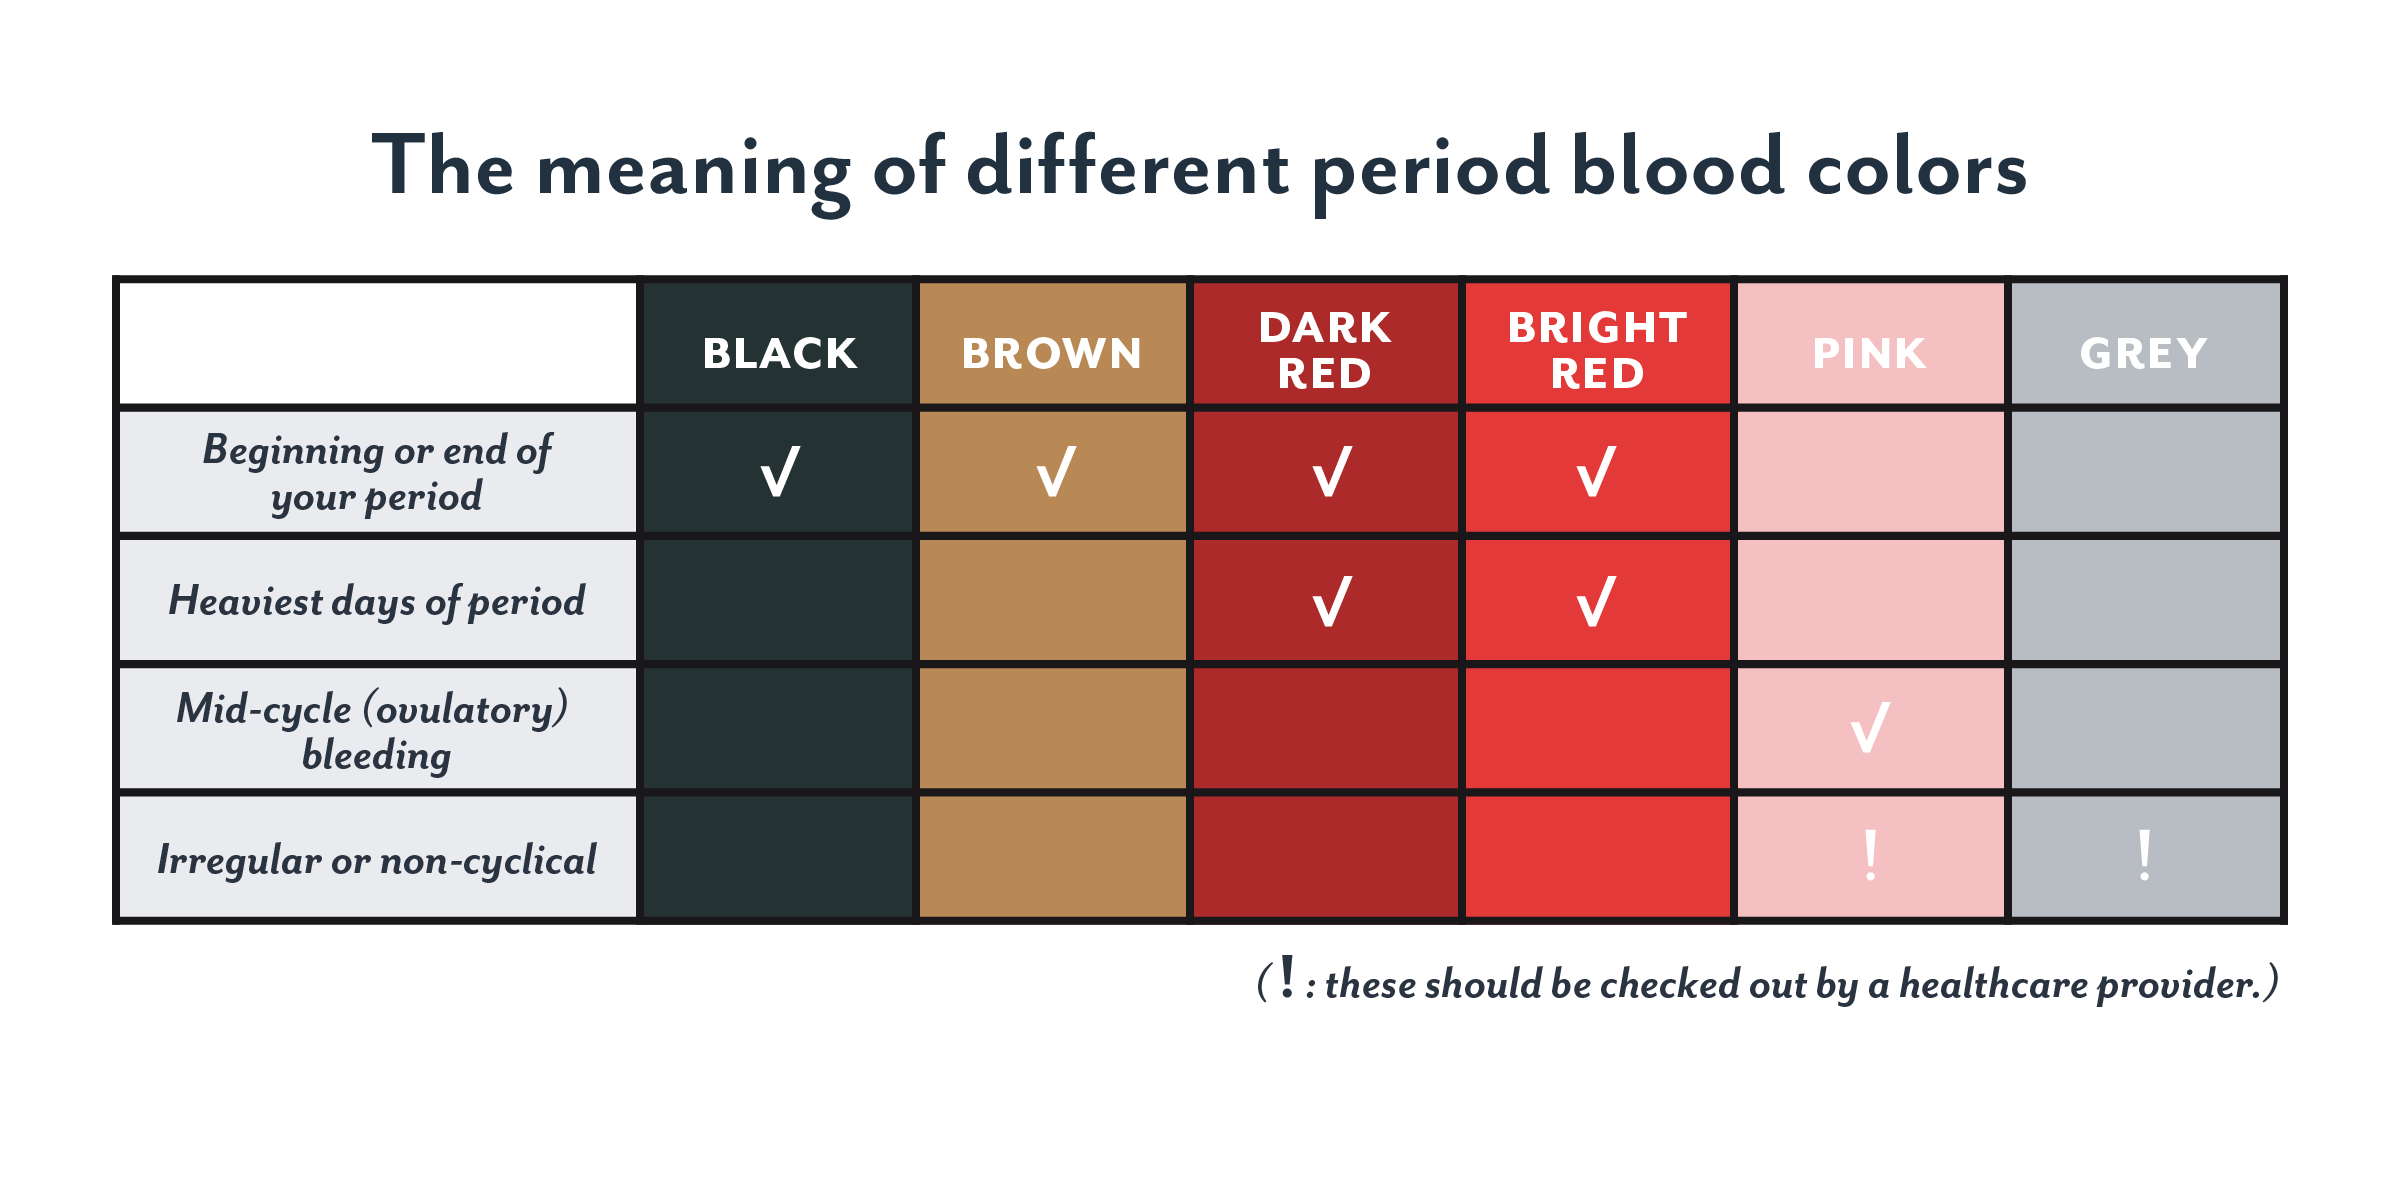 Period blood color: brown, black, or dark — does it matter?